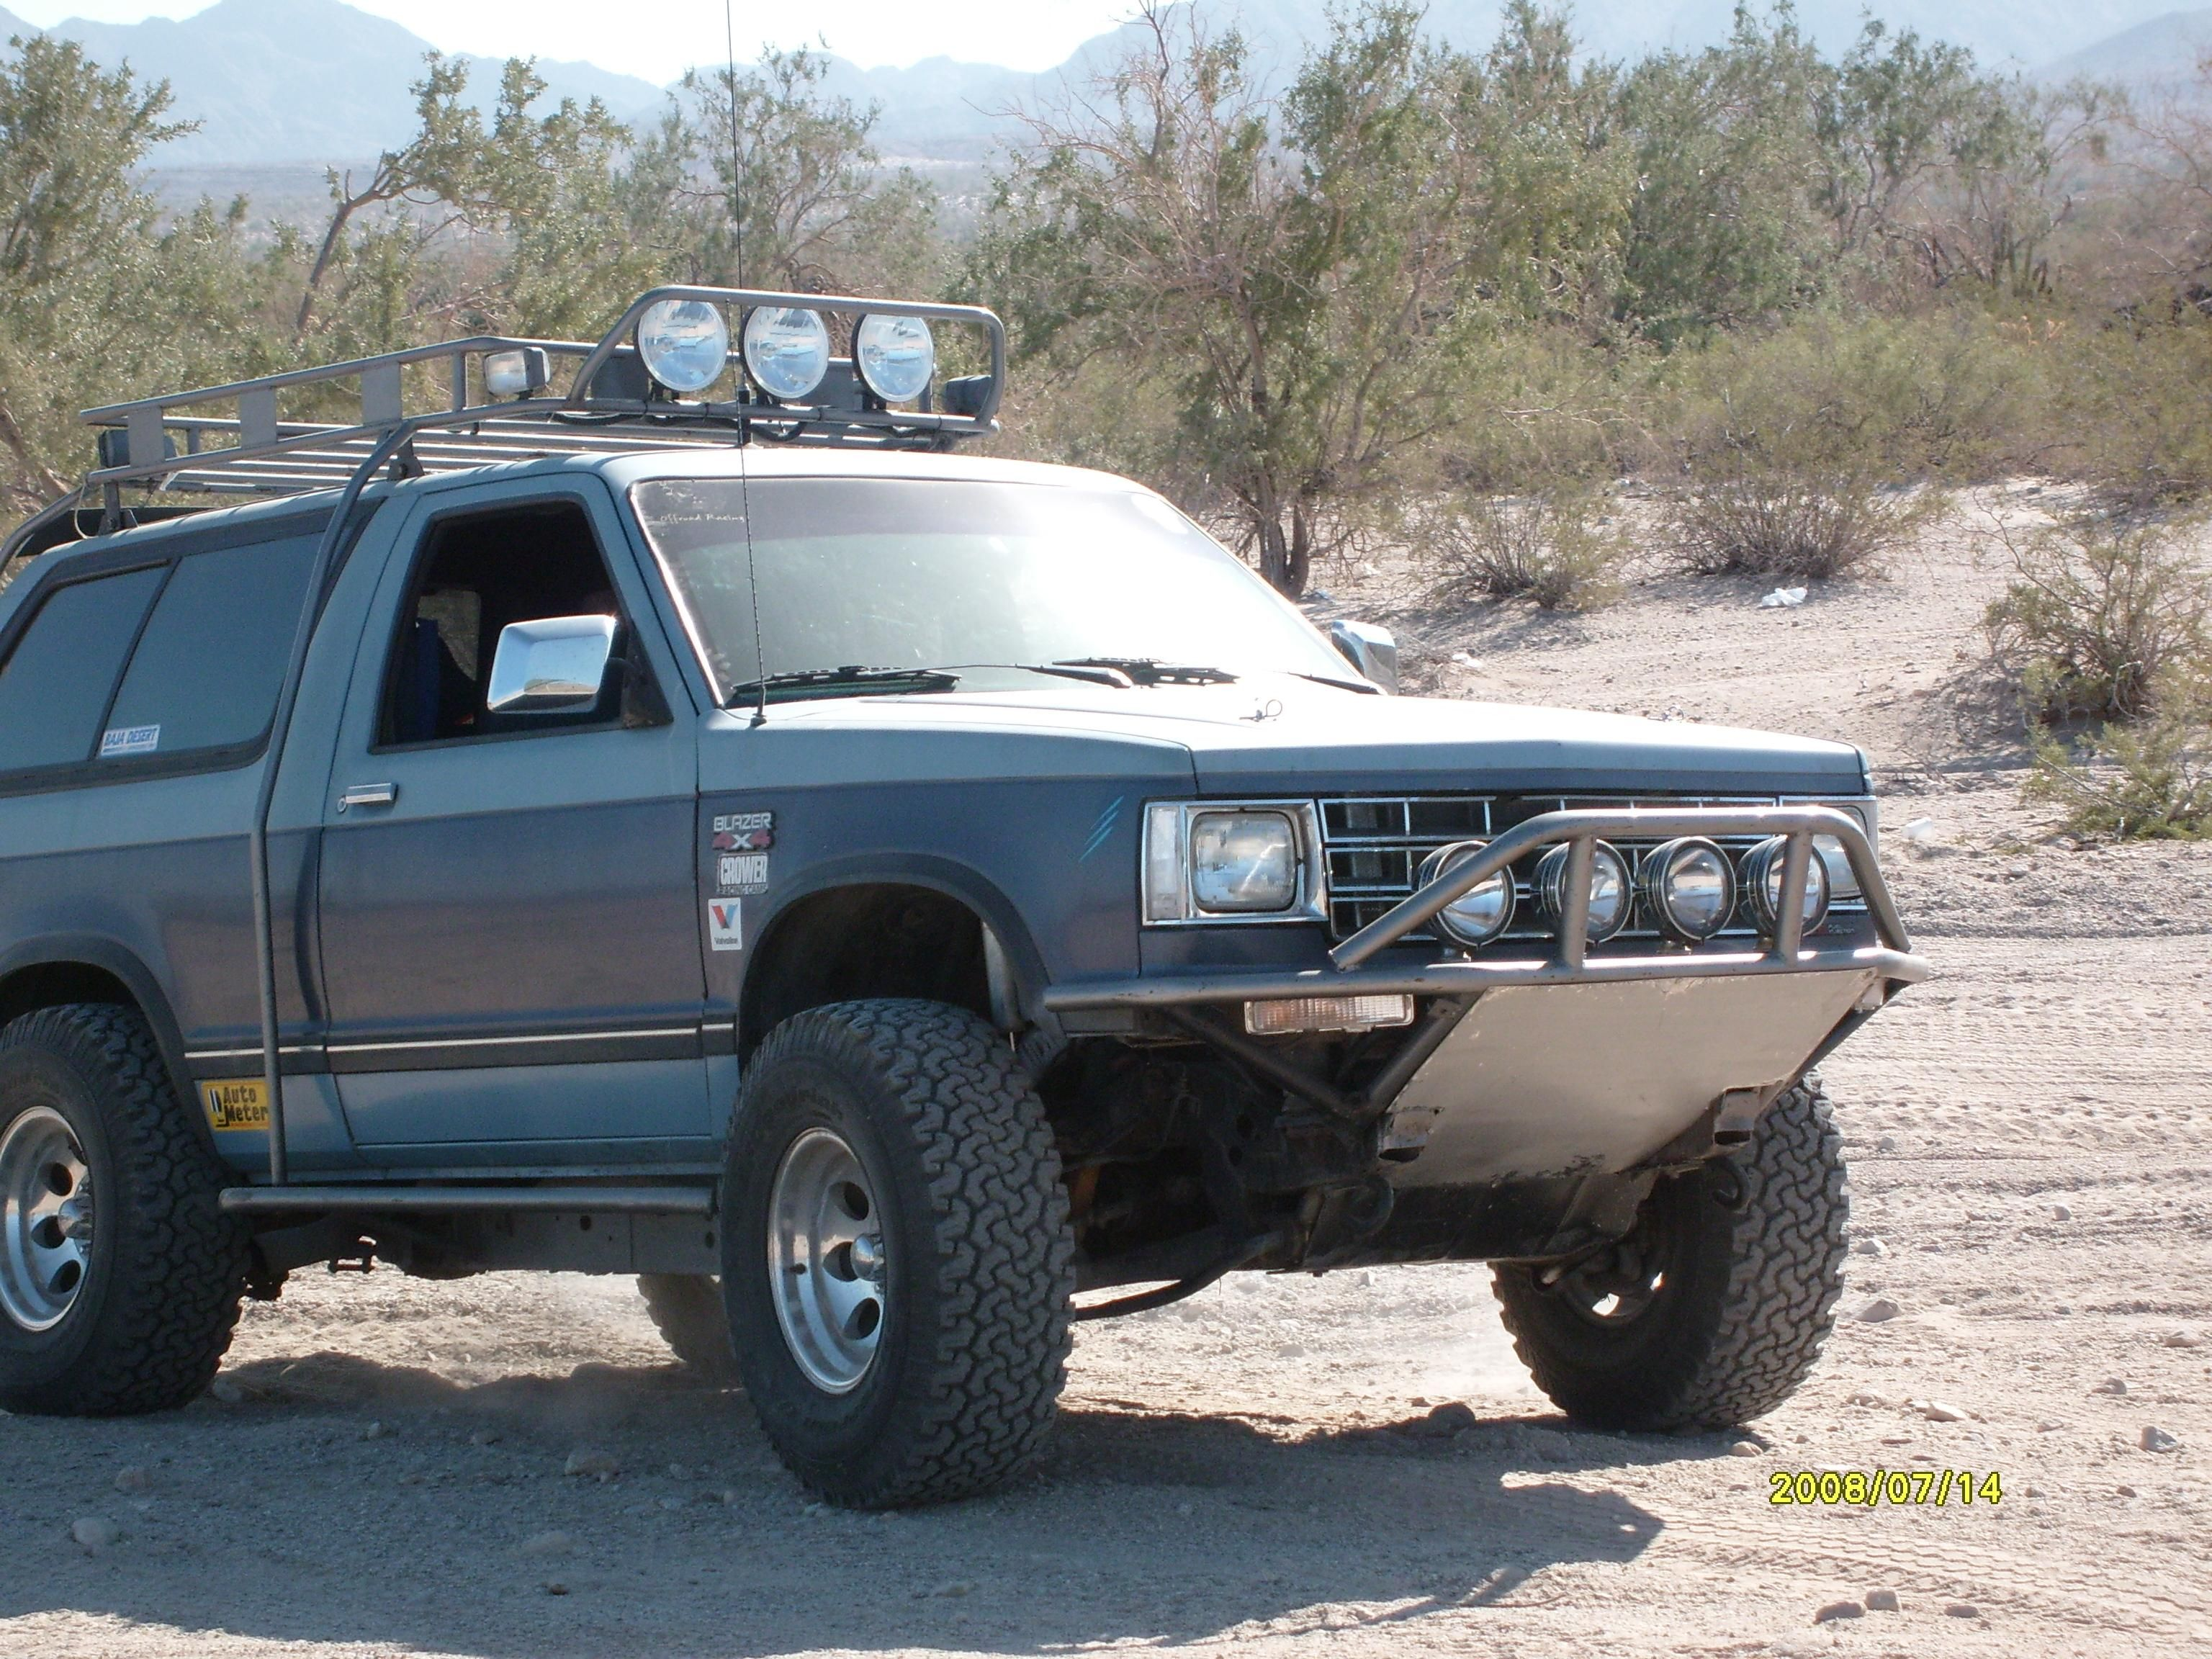 Check Out Jsyaudio 1986 Chevrolet S10 Blazer In For Ride Specification Modification Info And Photos And Follow Jsyaudio S10 Blazer Blazer 4x4 Chevrolet S 10